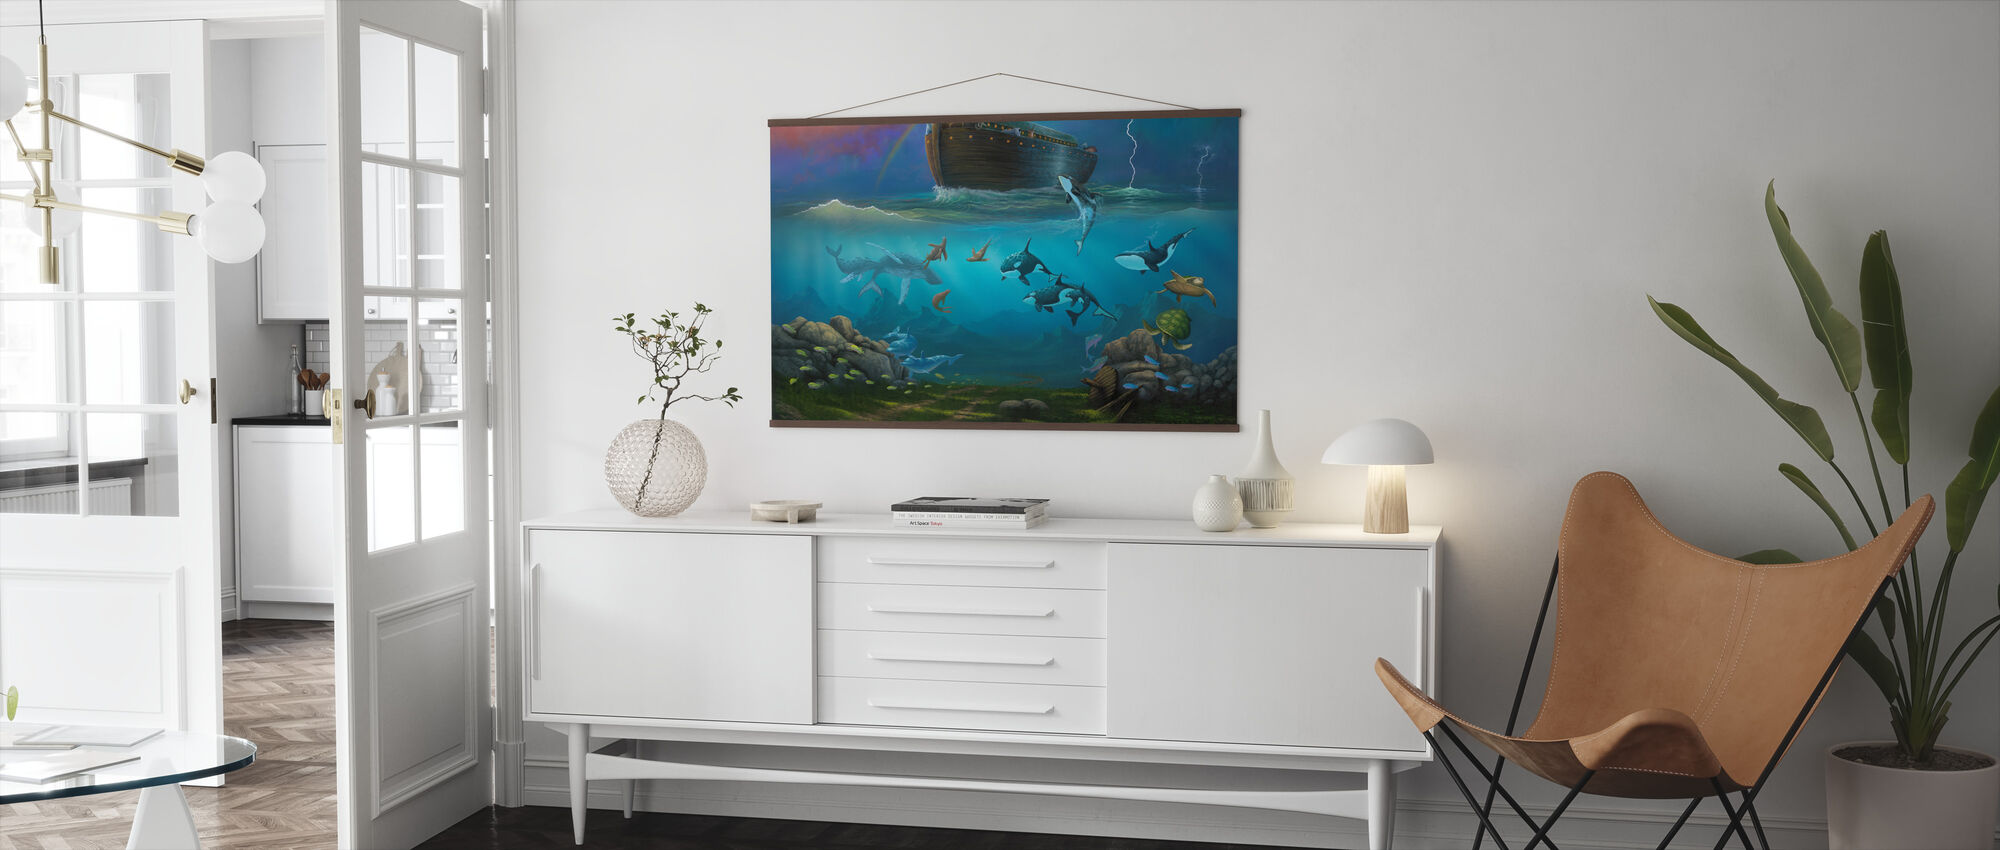 Noah's Ark - Poster - Living Room